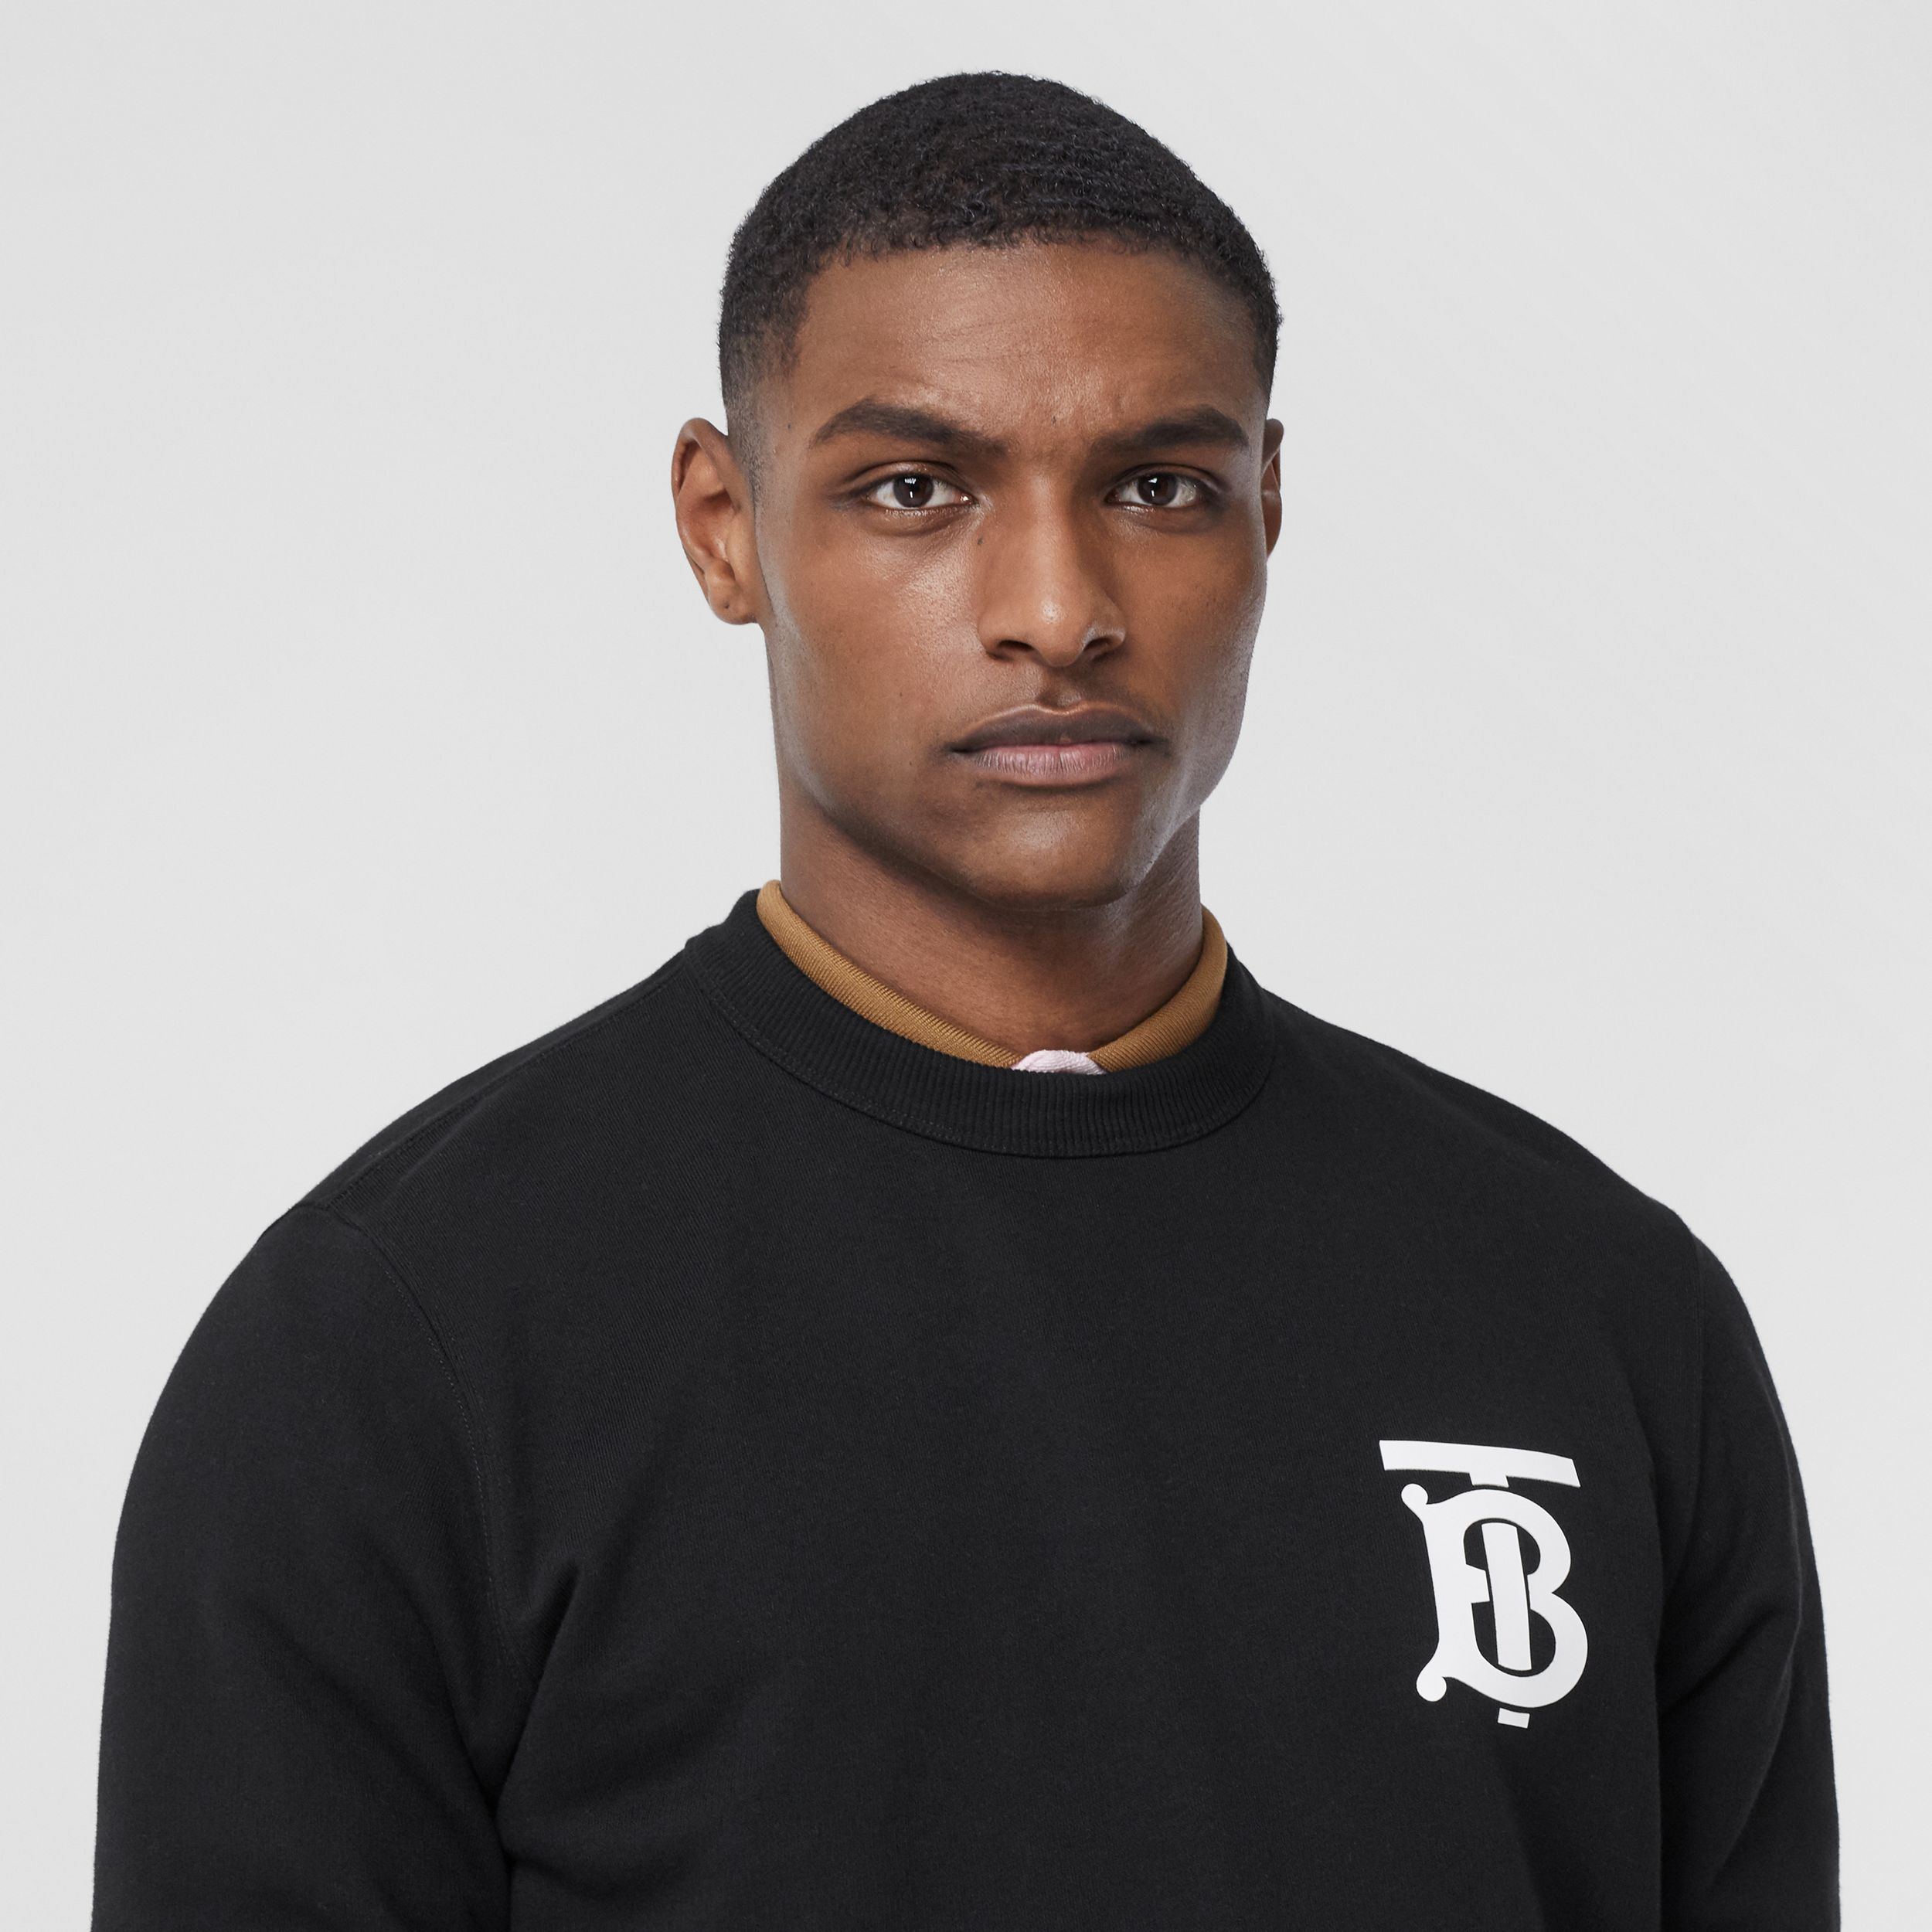 Monogram Motif Cotton Sweatshirt in Black - Men | Burberry - 3